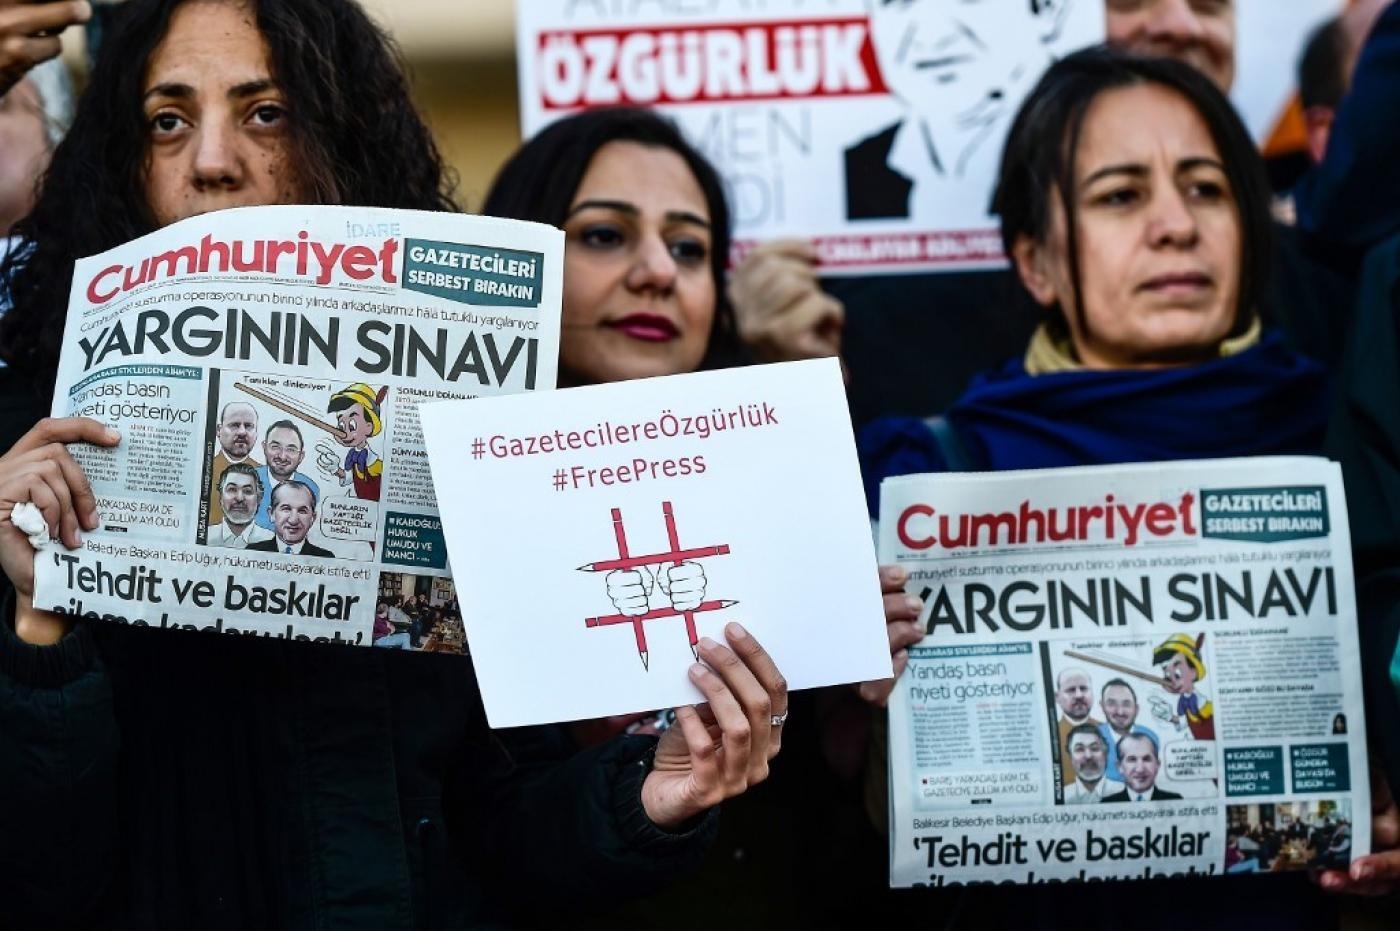 Protesters hold copies of Turkish daily newspaper Cumhuriyet and placards during a demonstration in front of a courthouse in Istanbul on 31 October 2017. (AFP)